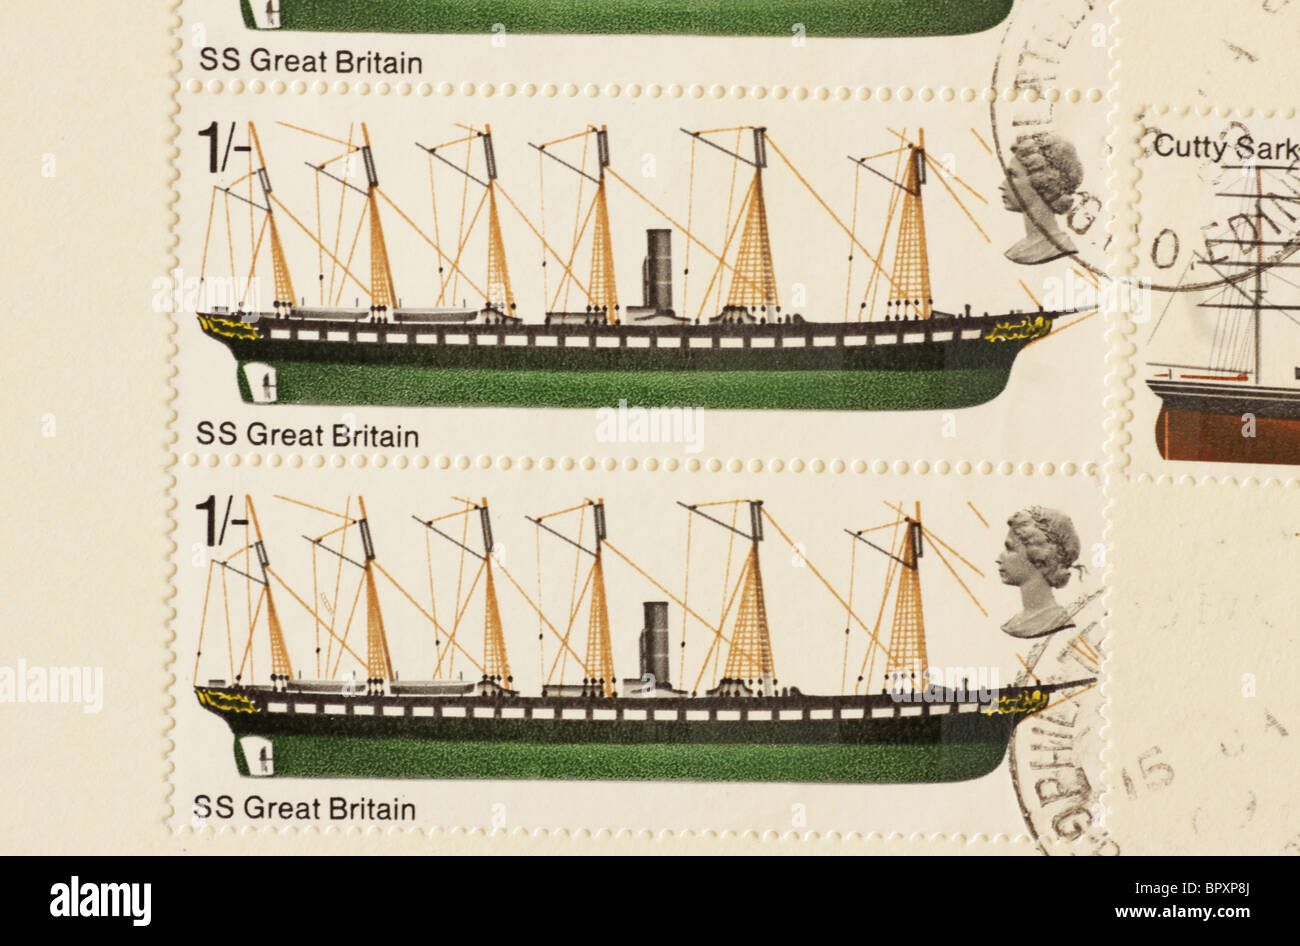 British Ships Commemoration Stamp SS Great Britain 1969 - Stock Image